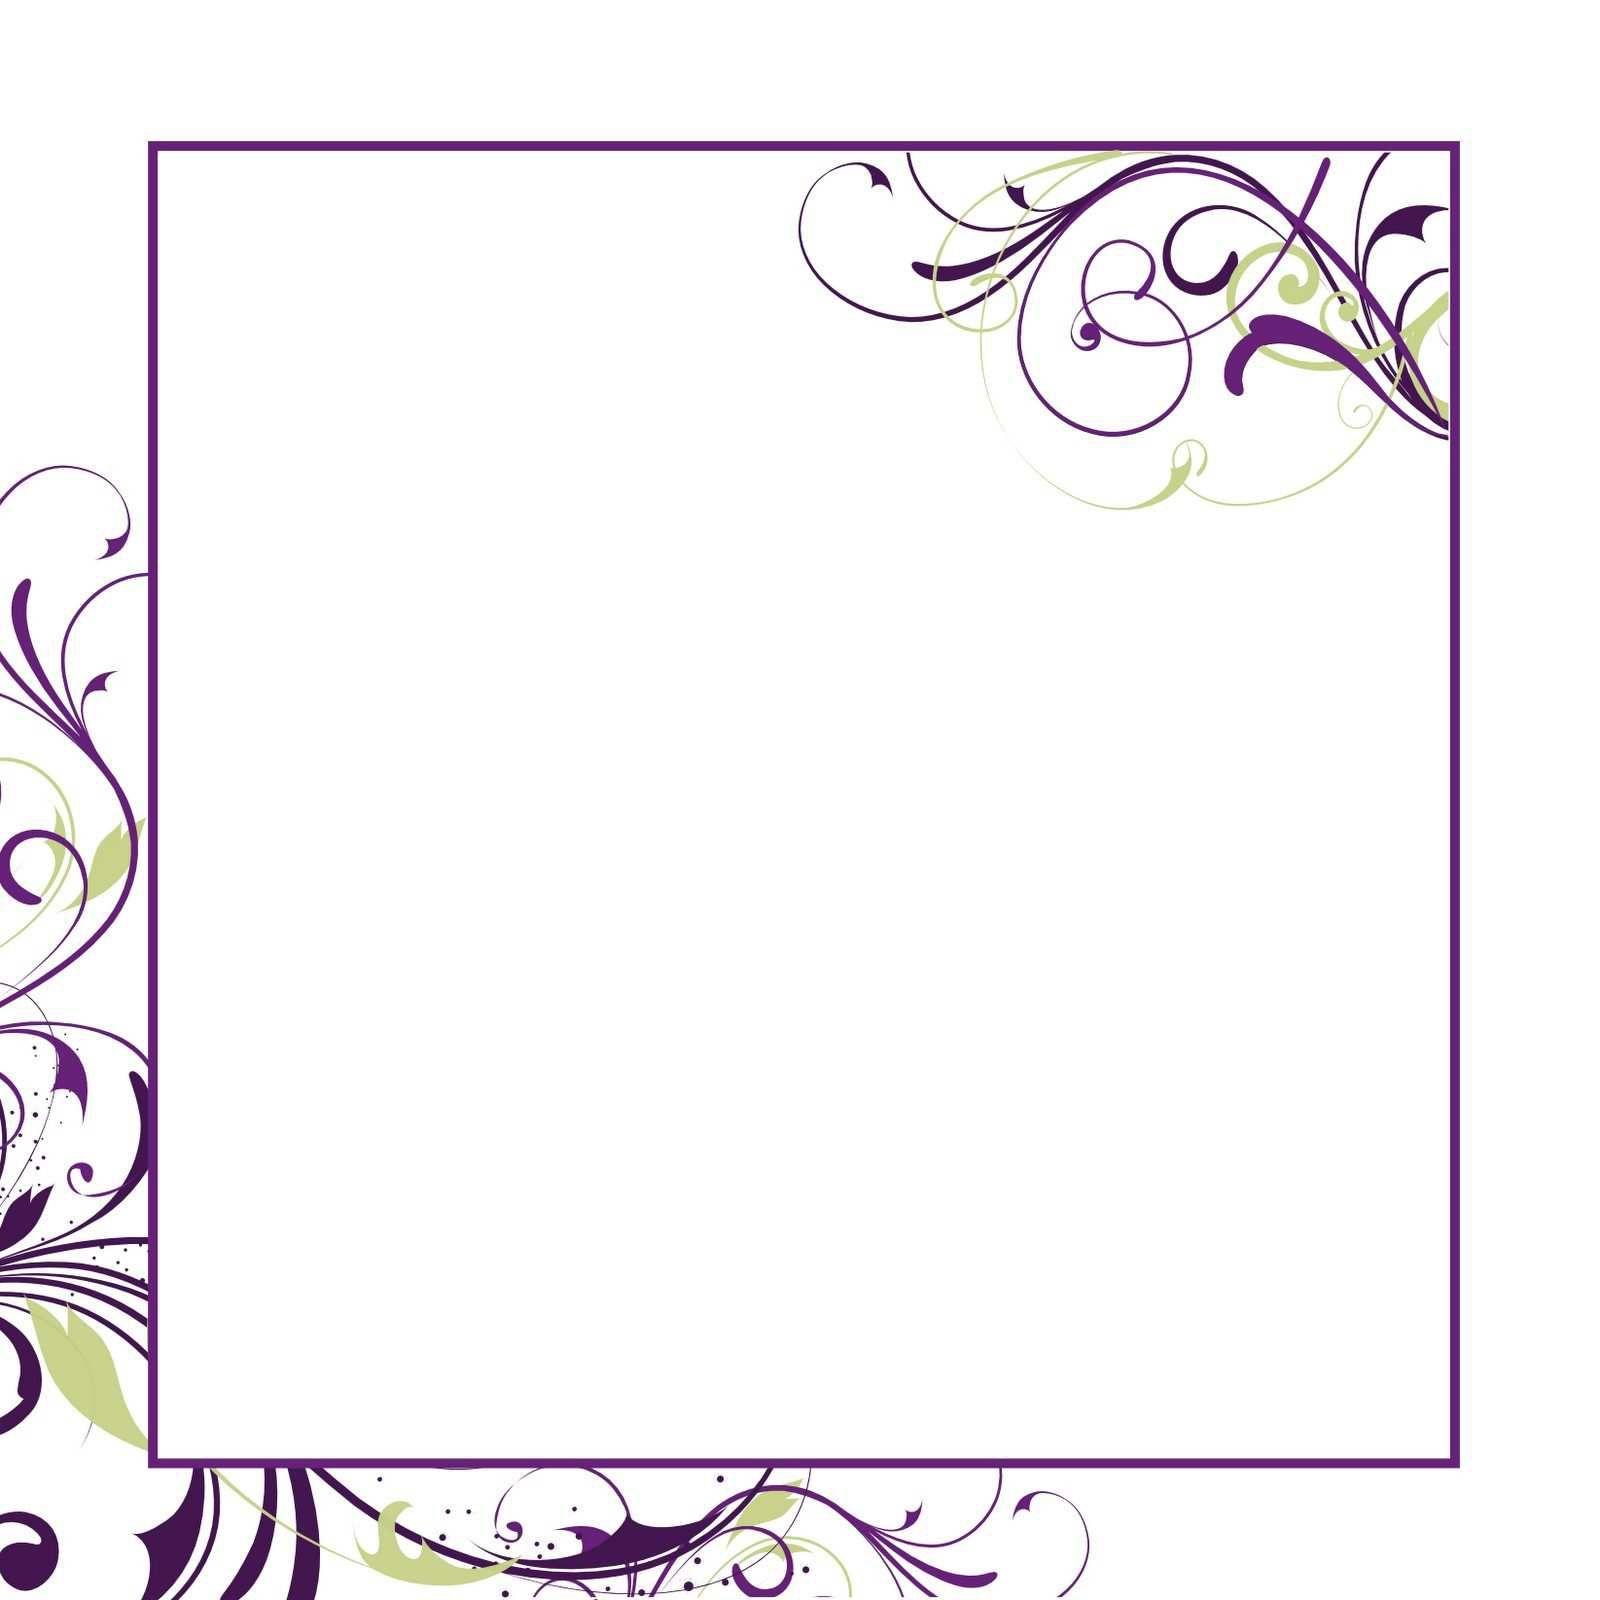 003 Stunning Free Download Formal Invitation Card Template Concept  SampleFull